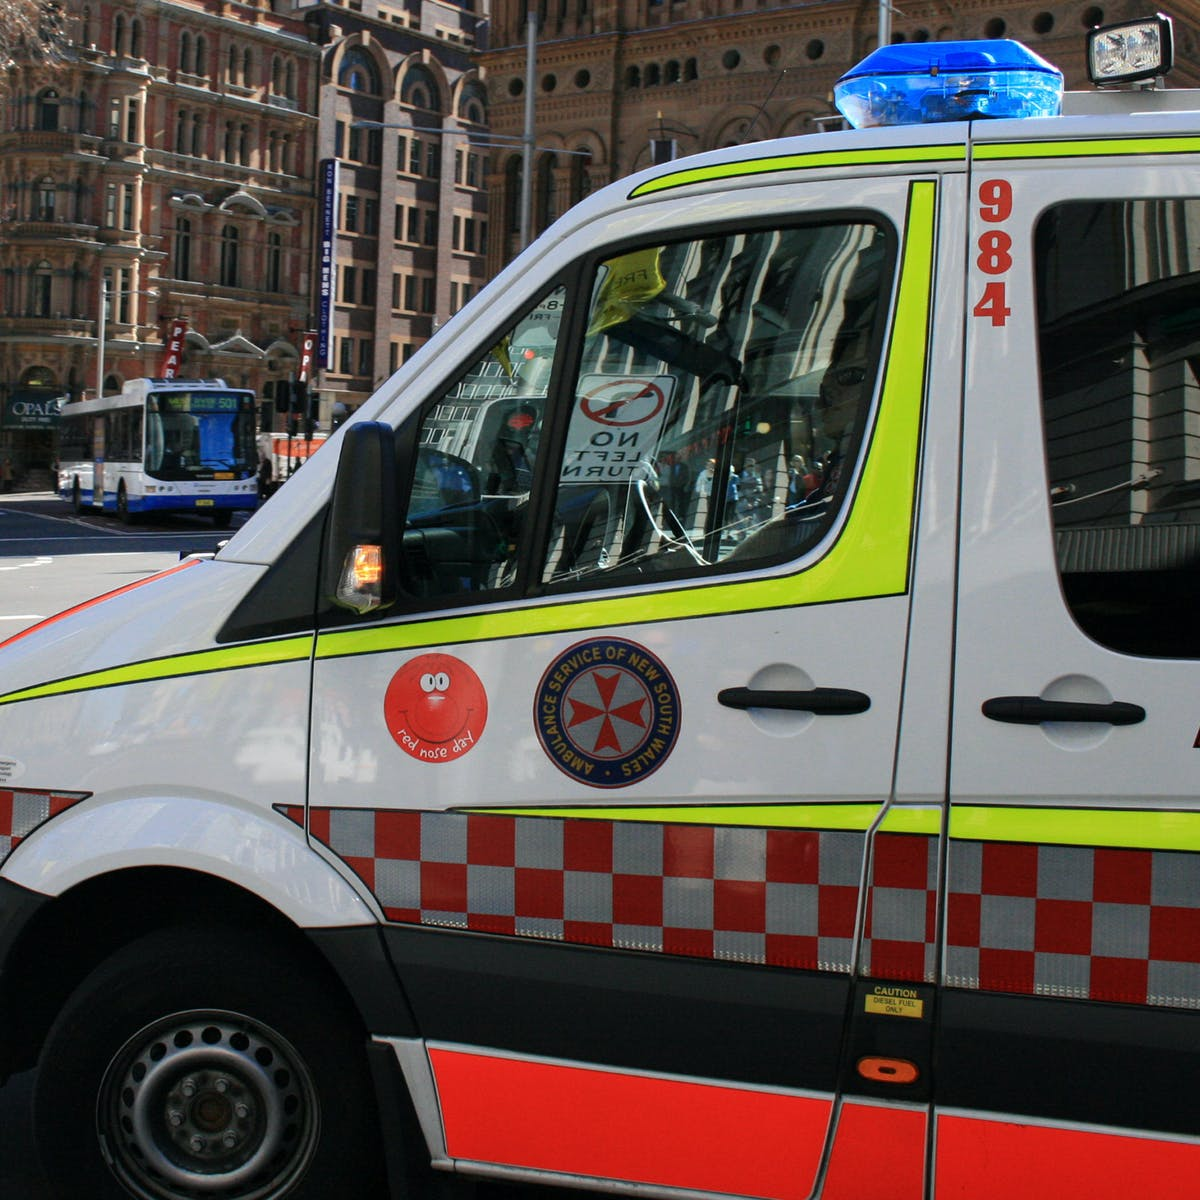 When is it OK to call an ambulance?